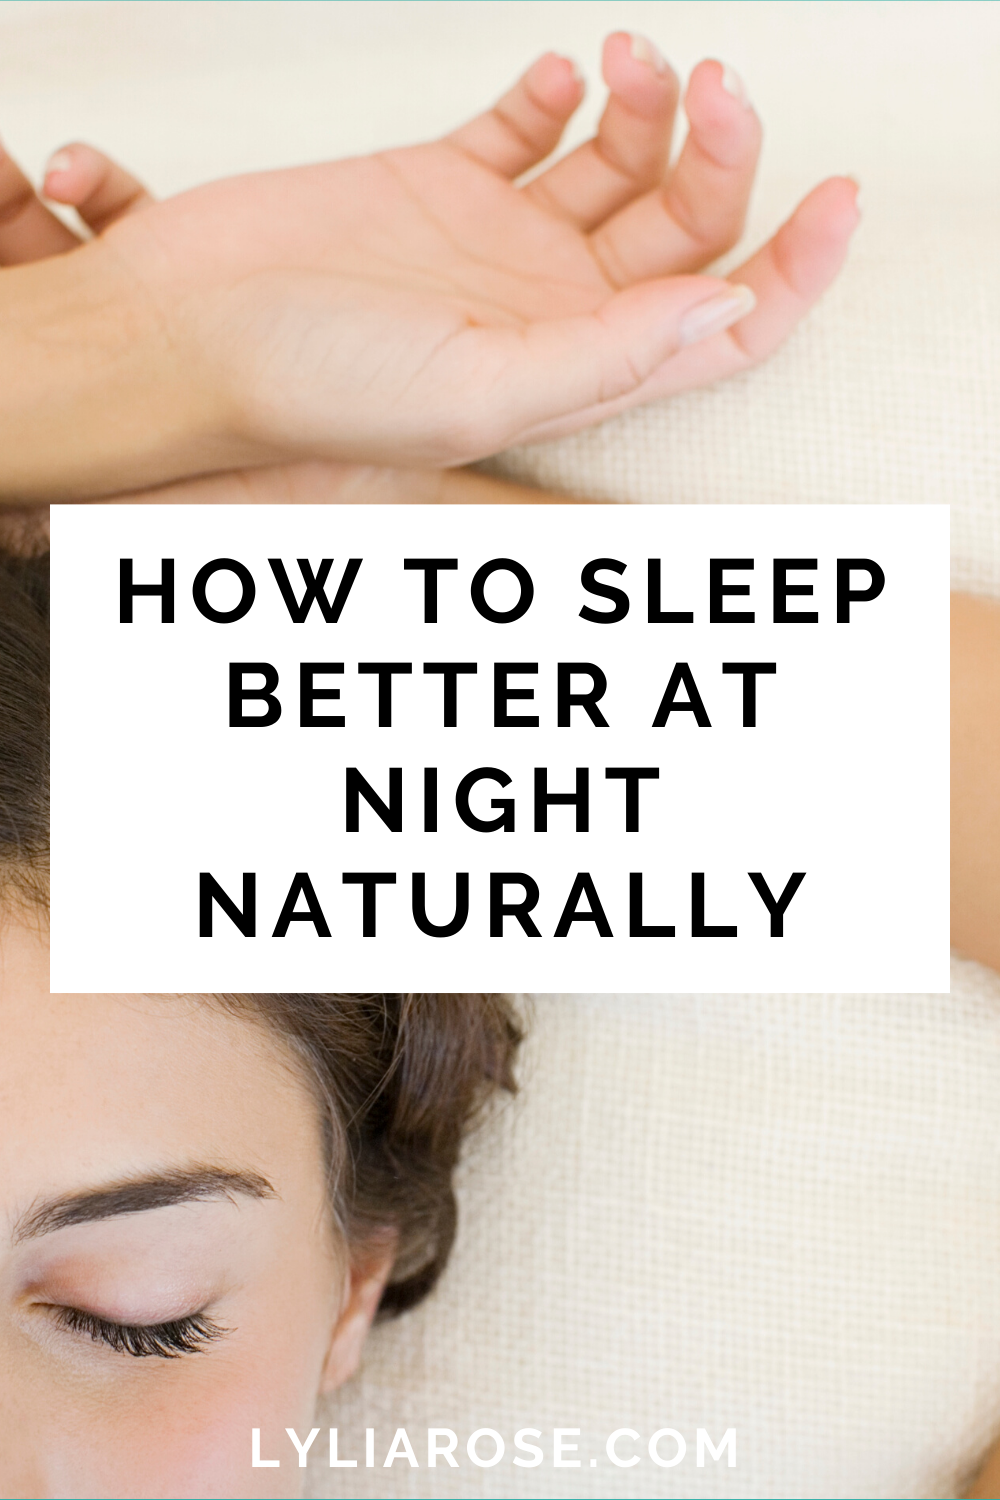 How to sleep better at night naturally (1)